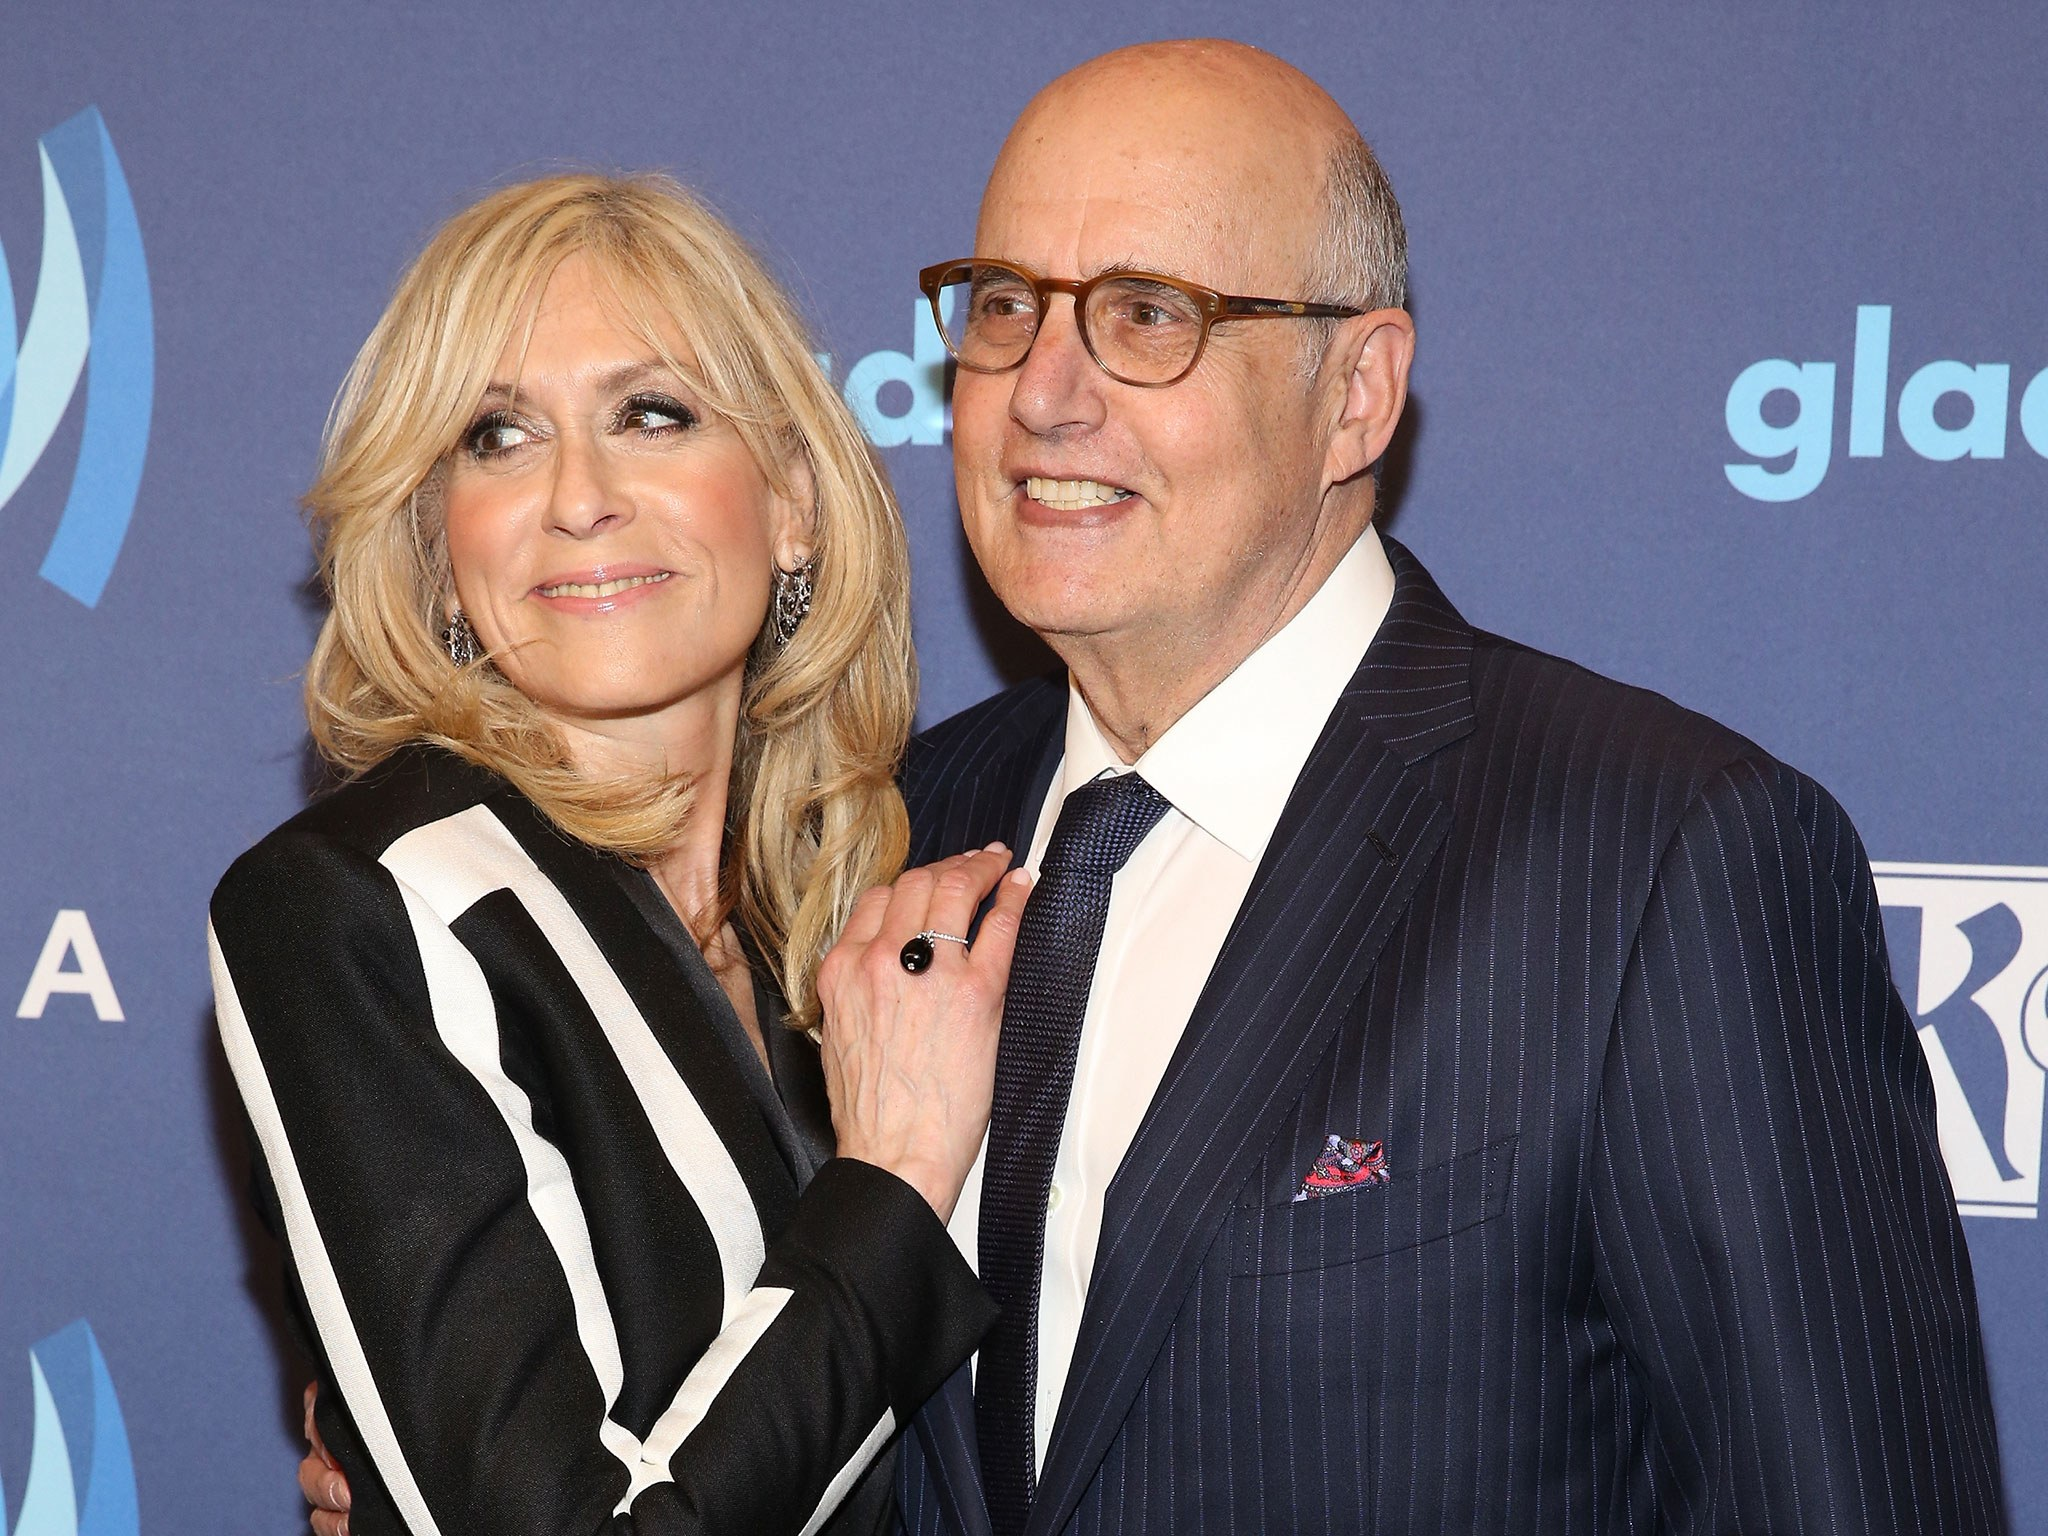 jeffrey-tambor-judith-light-glaad-awards-2015-tout.jpg